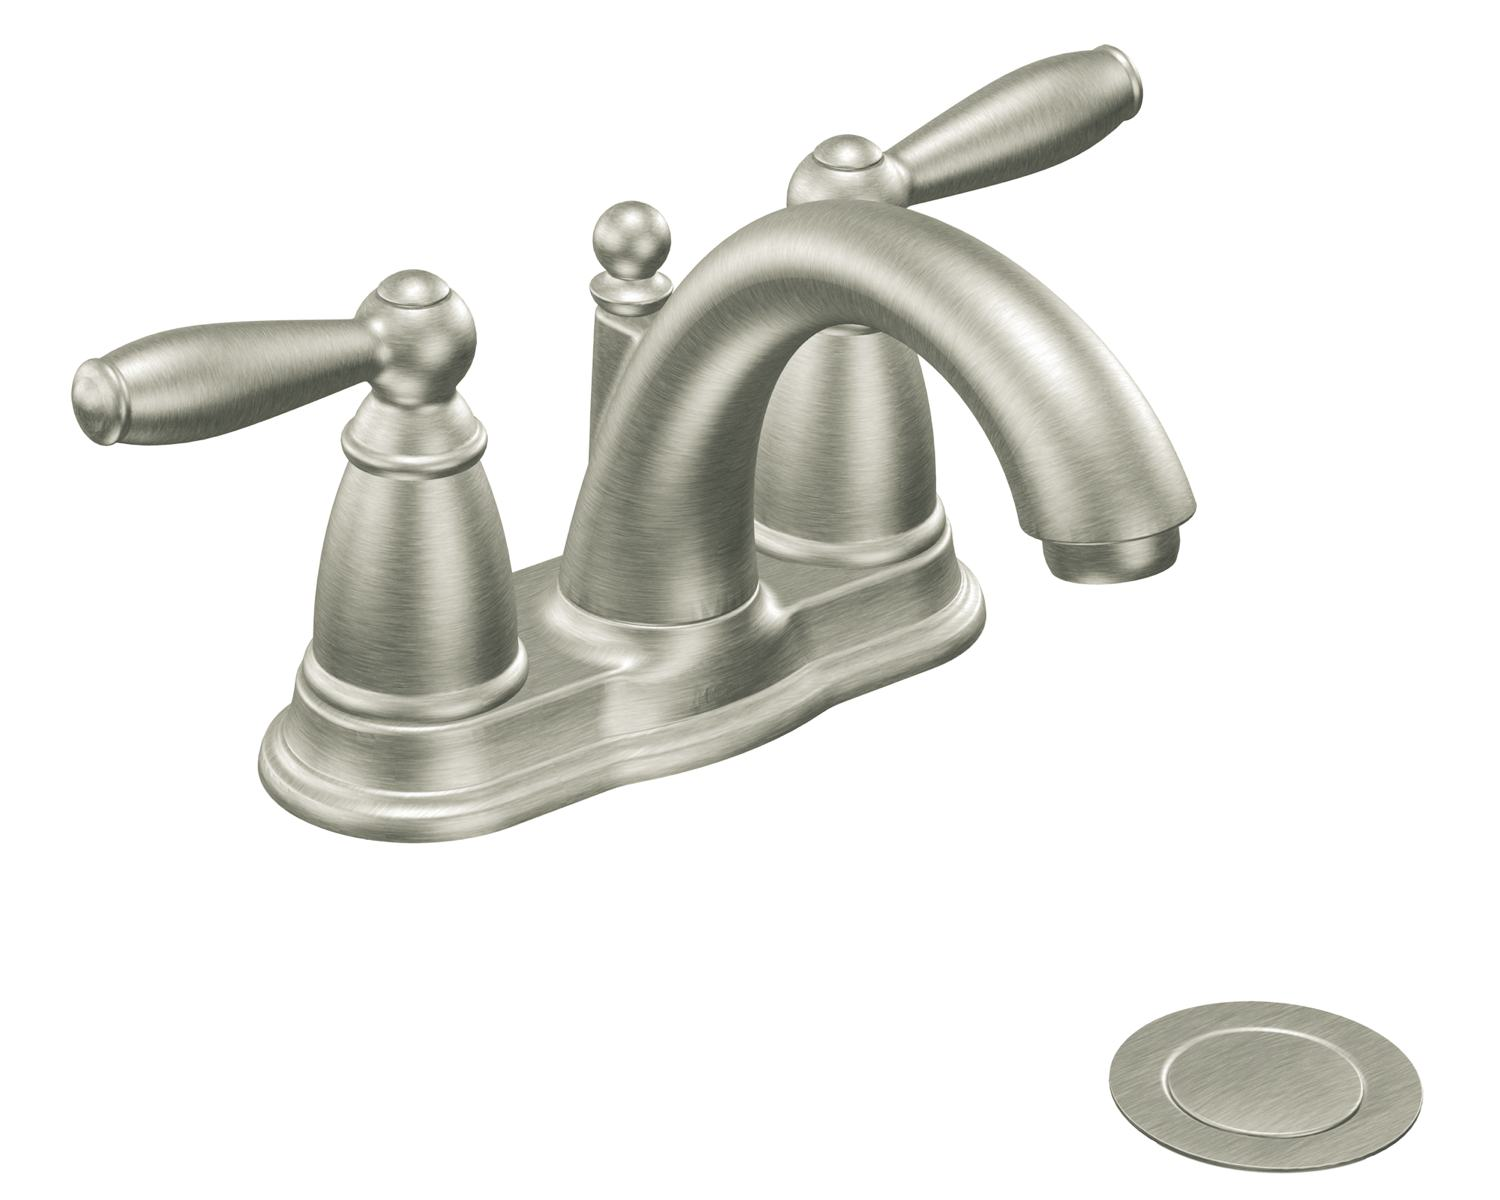 Moen 6610bn Brantford Two Handle Low Arc Bathroom Faucet With Drain Assembly Brushed Nickel